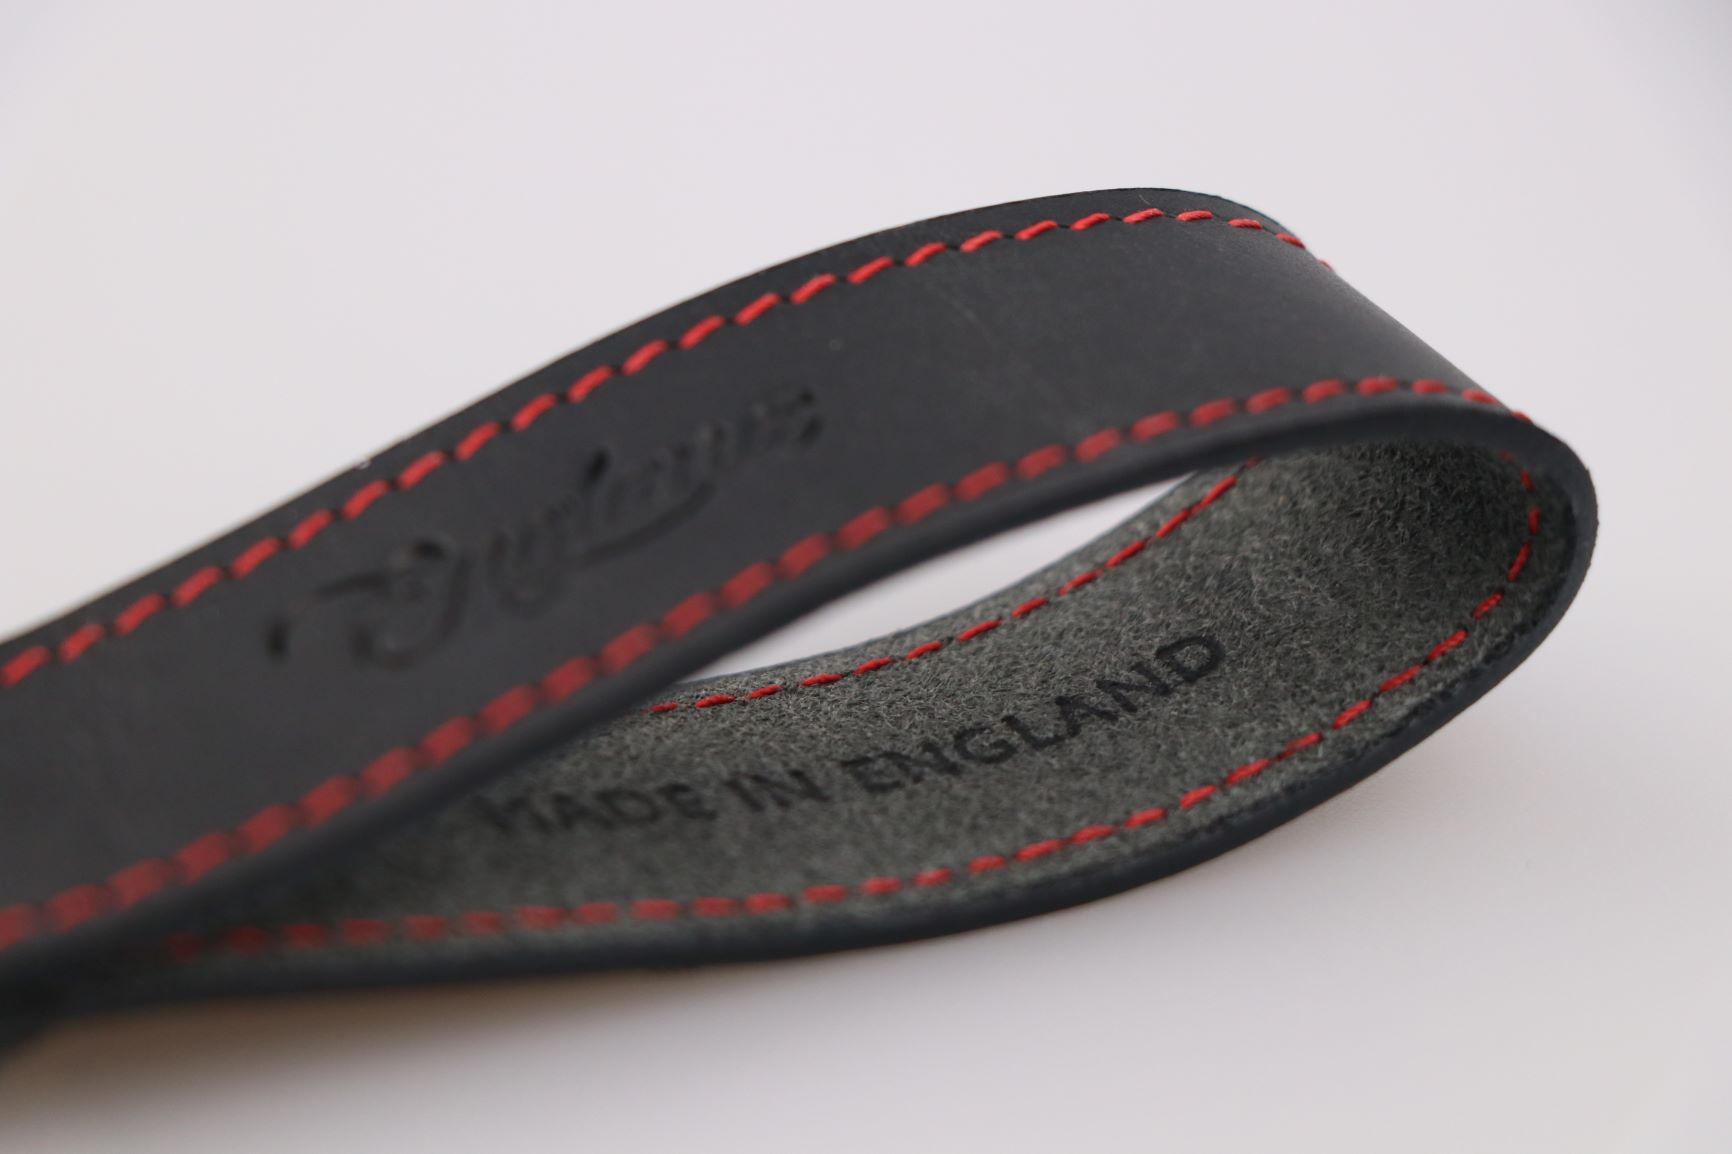 designer keyring in black and red. British made leather gift. Gifts for him.